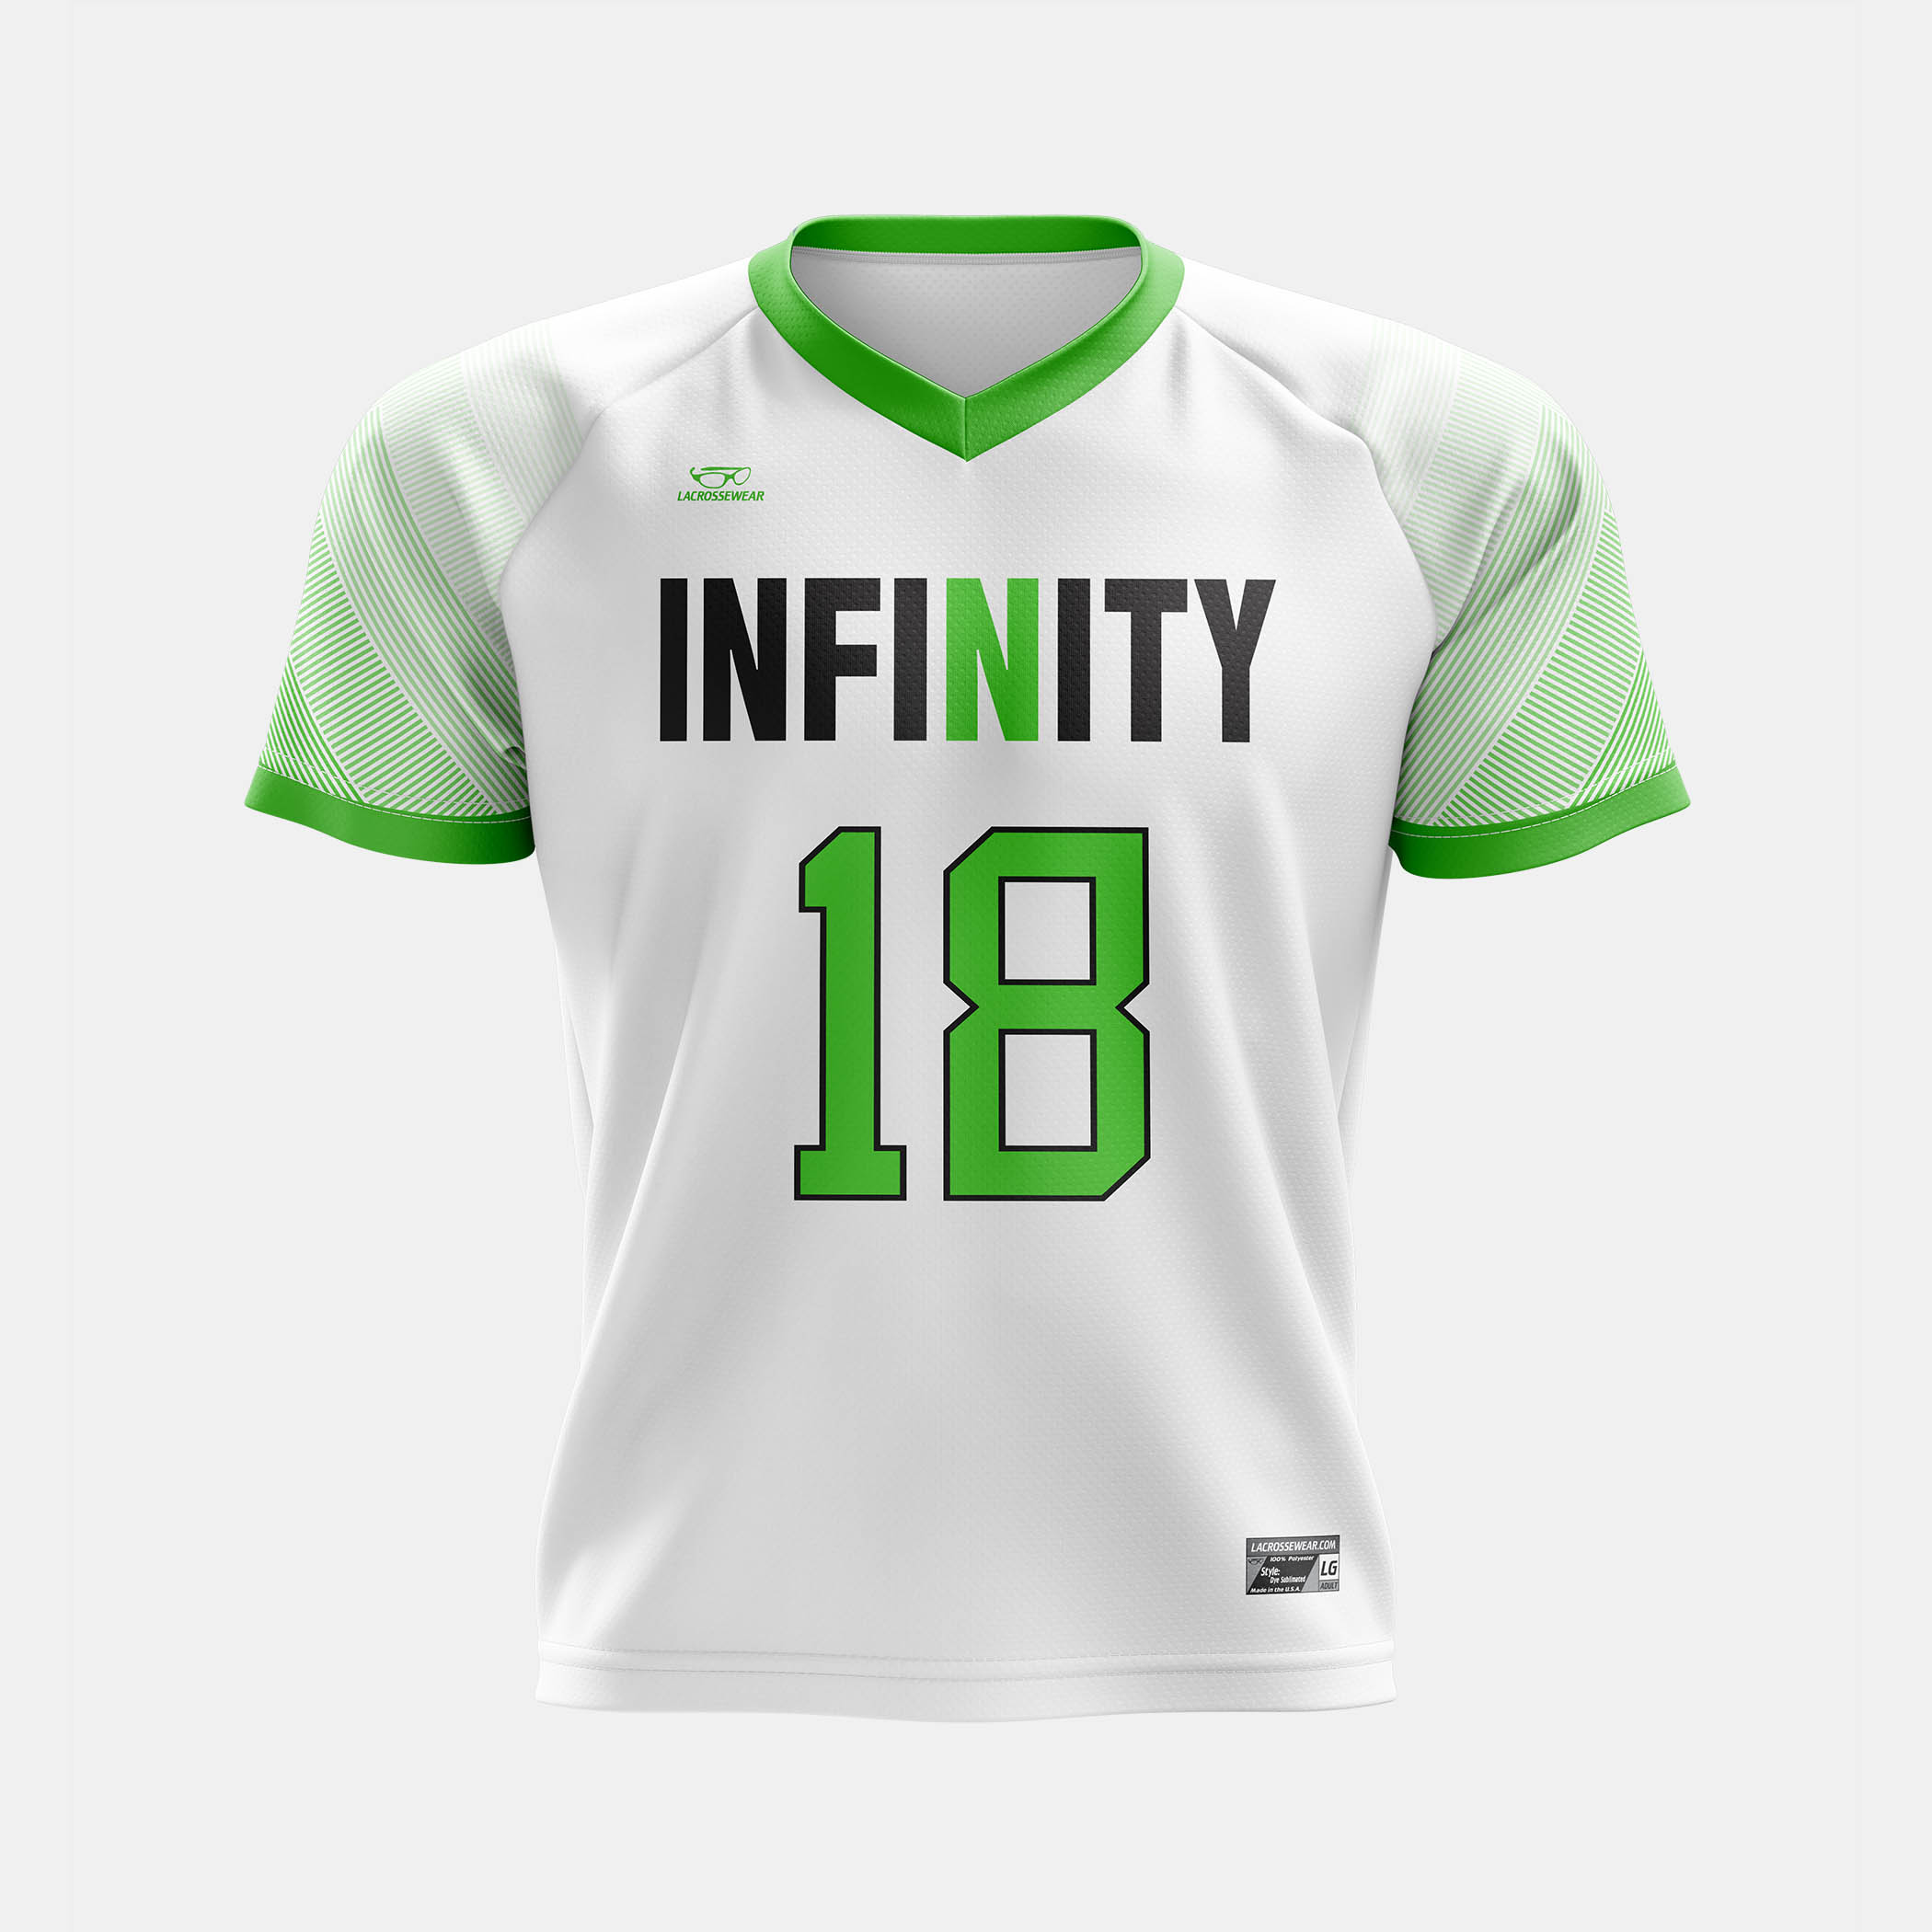 Infinity Jersey White Front